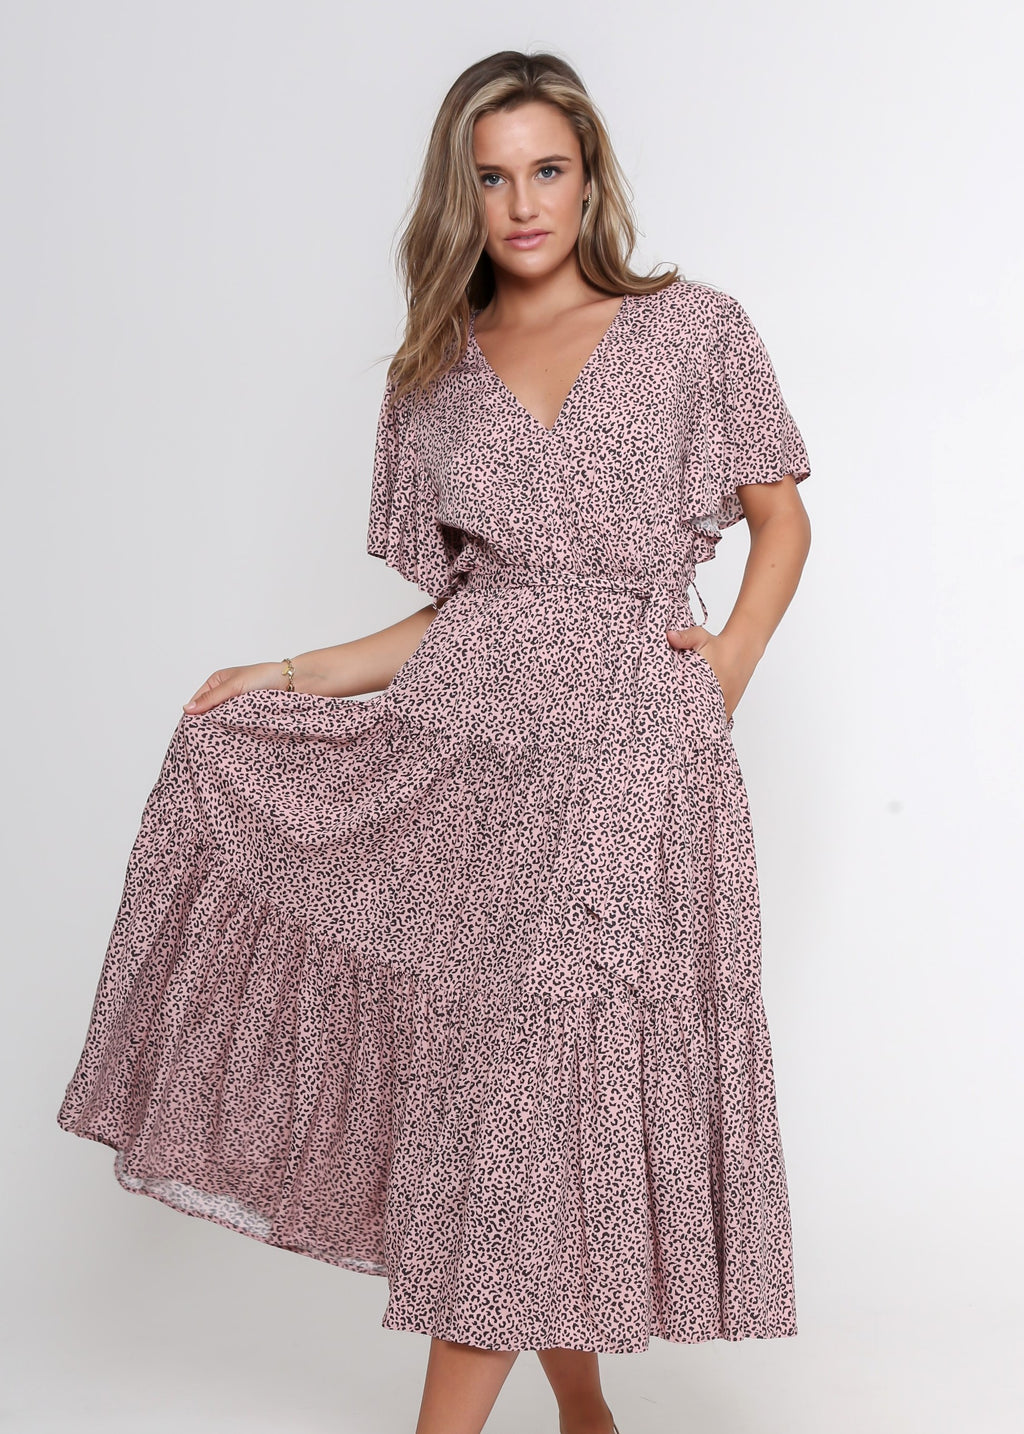 NEW - DAYNA DRESS - BLUSH LEOPARD